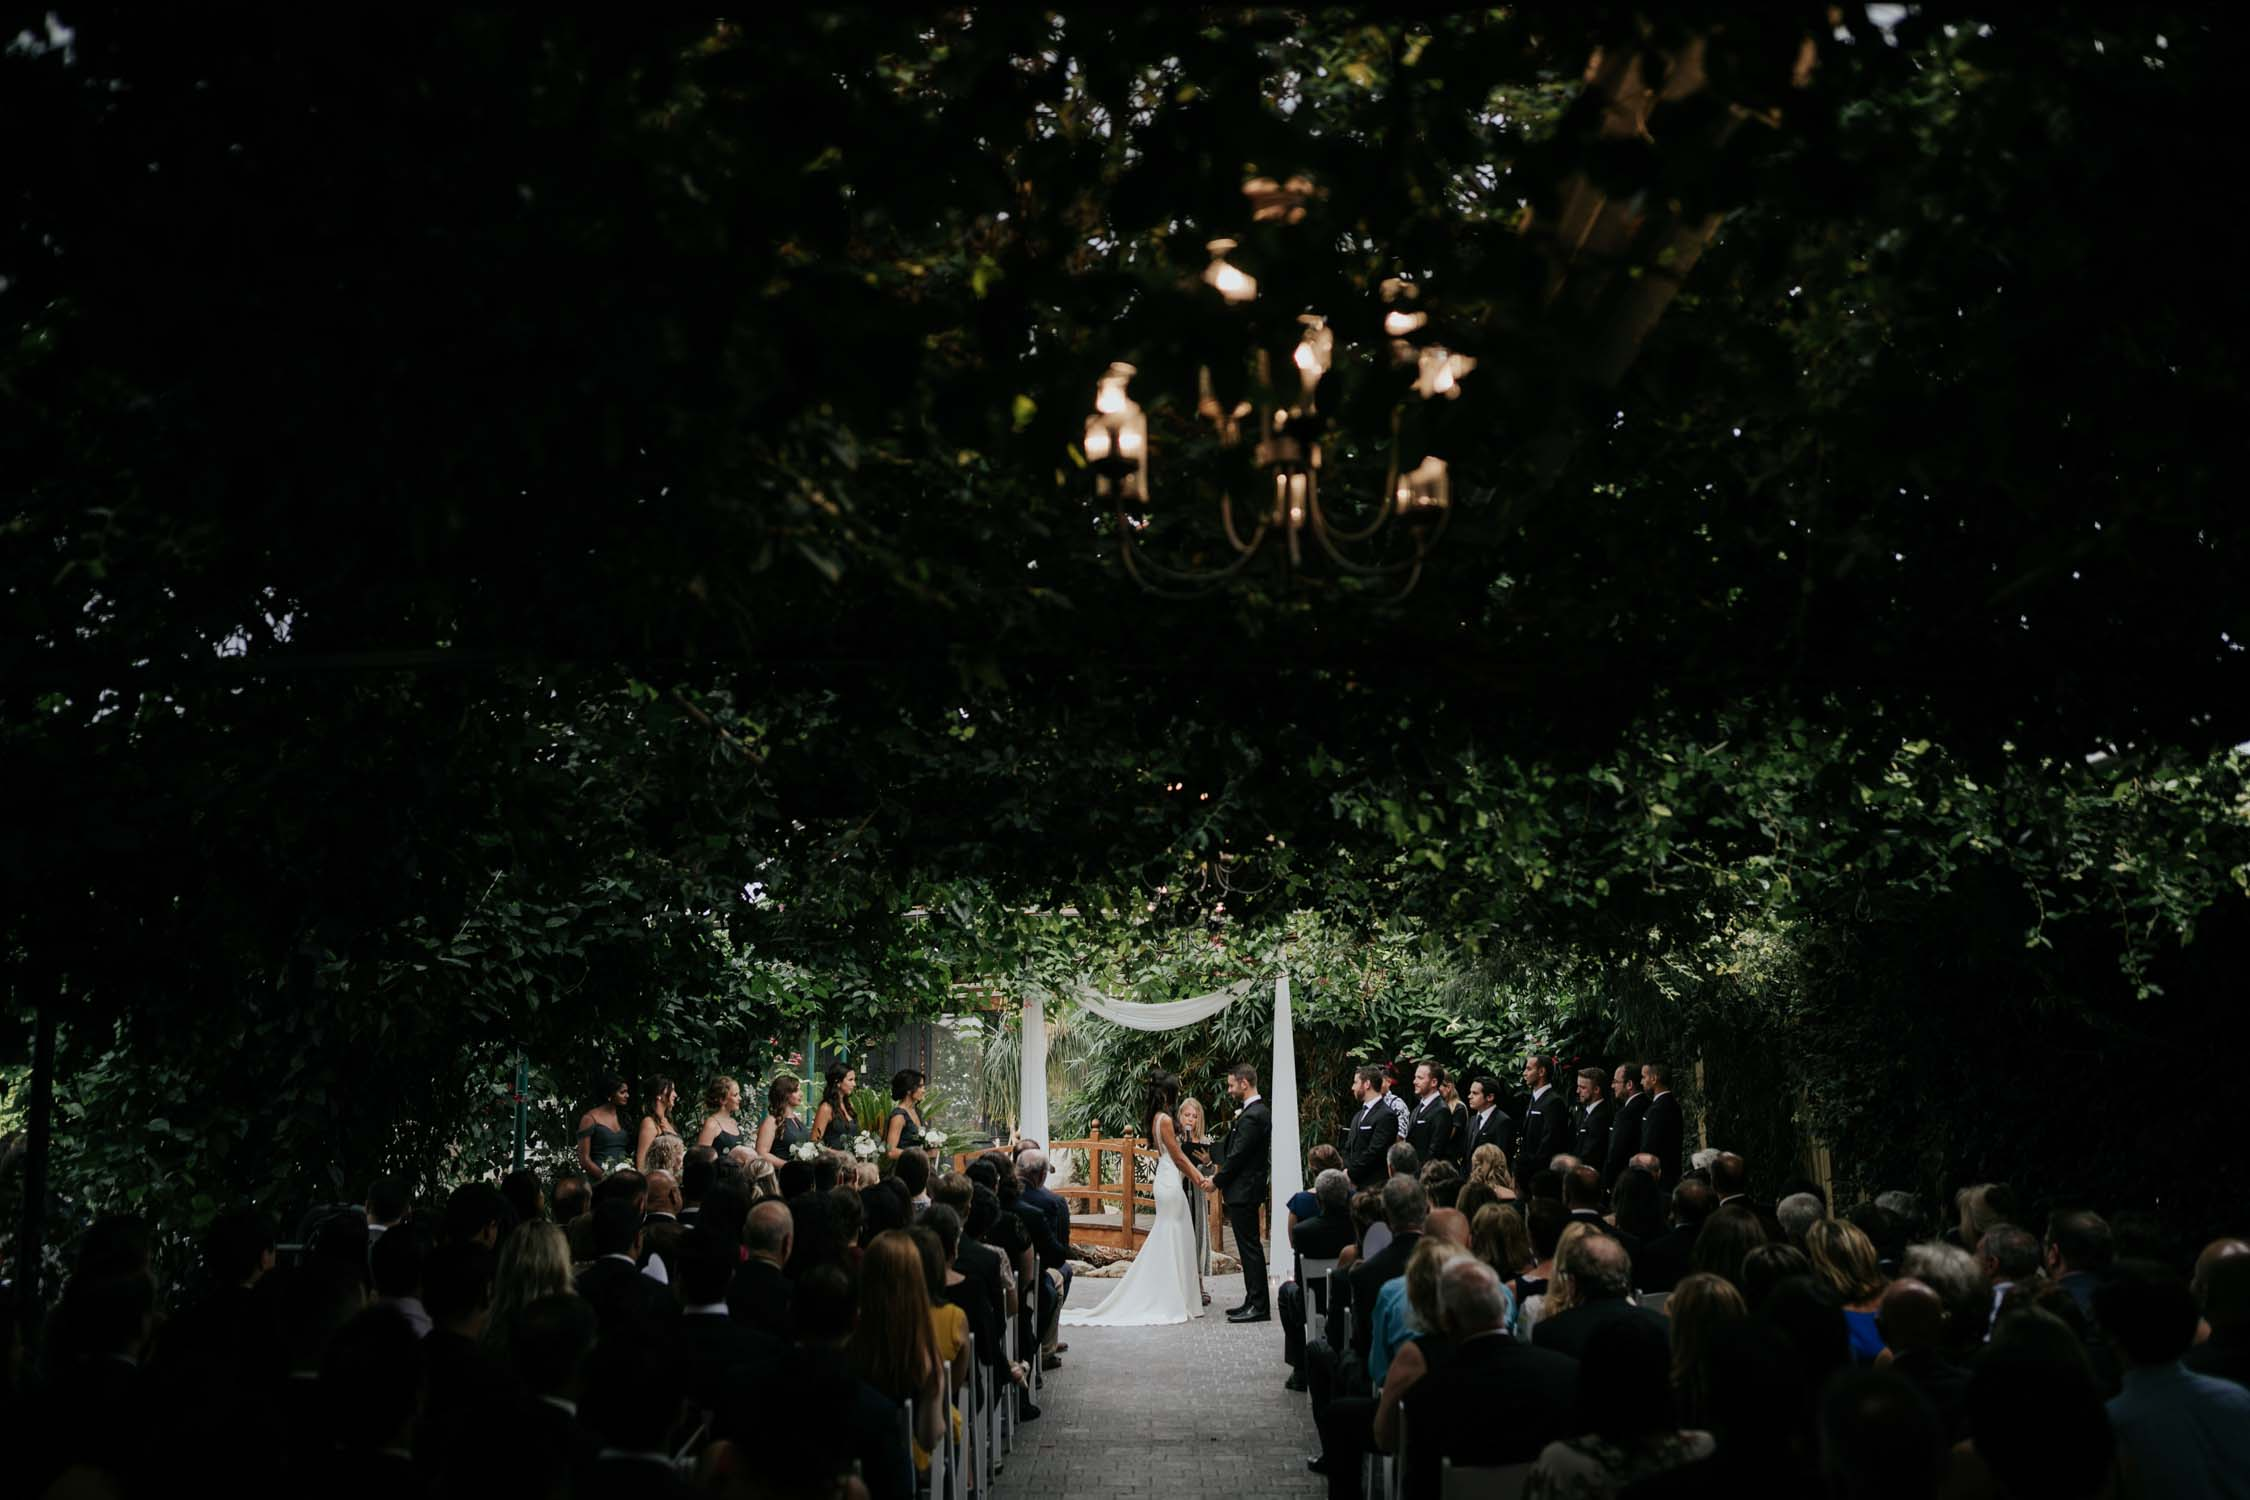 Greenhouse chapel at Madsen's Greenhouse wedding venue in Newmarket close to Toronto